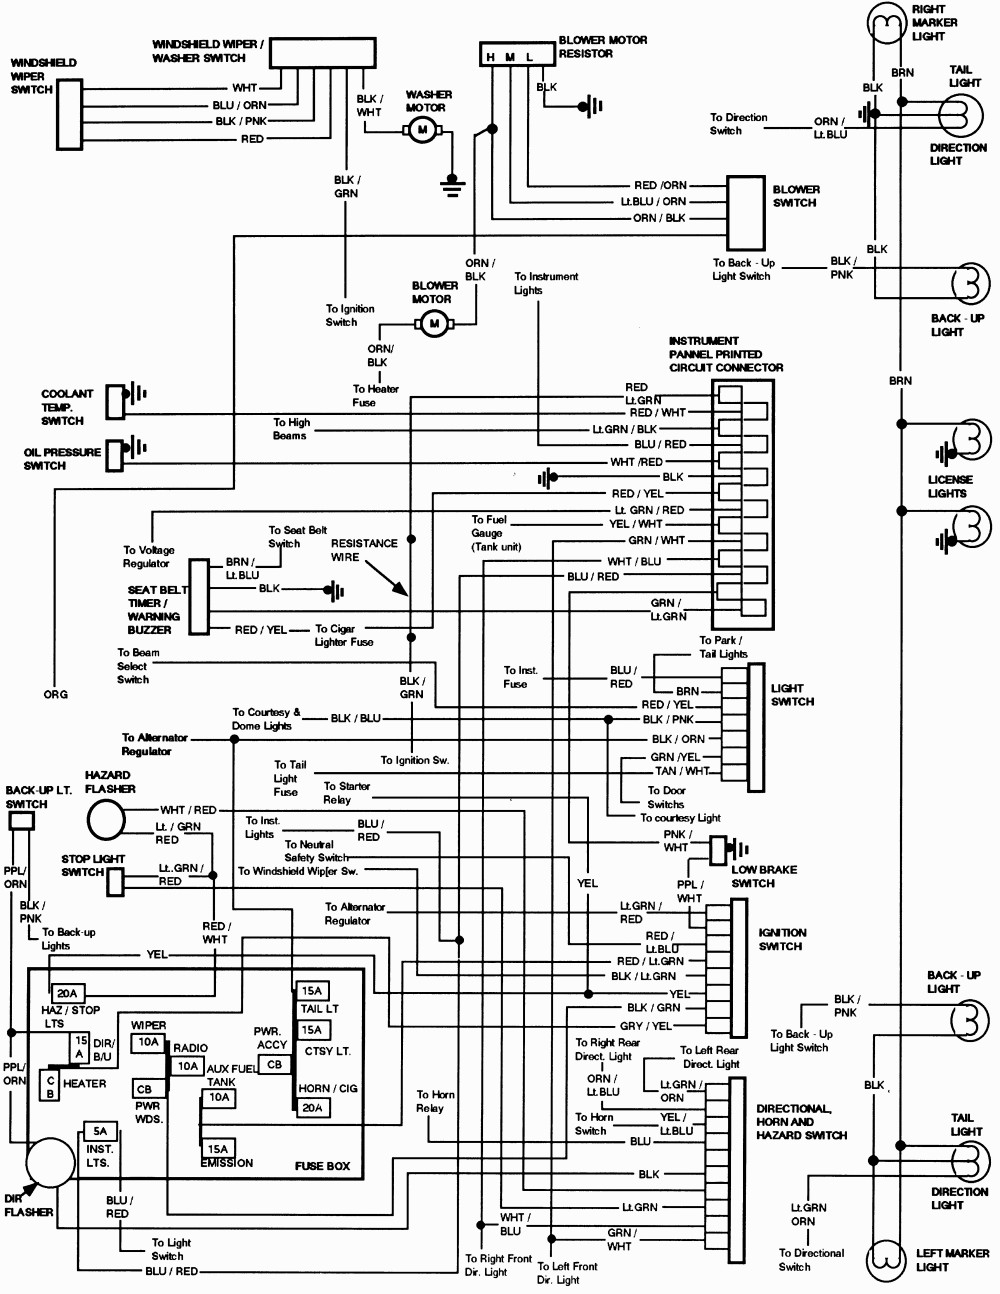 89 Mustang Radio Wiring Diagram Free Diagrams For Ford